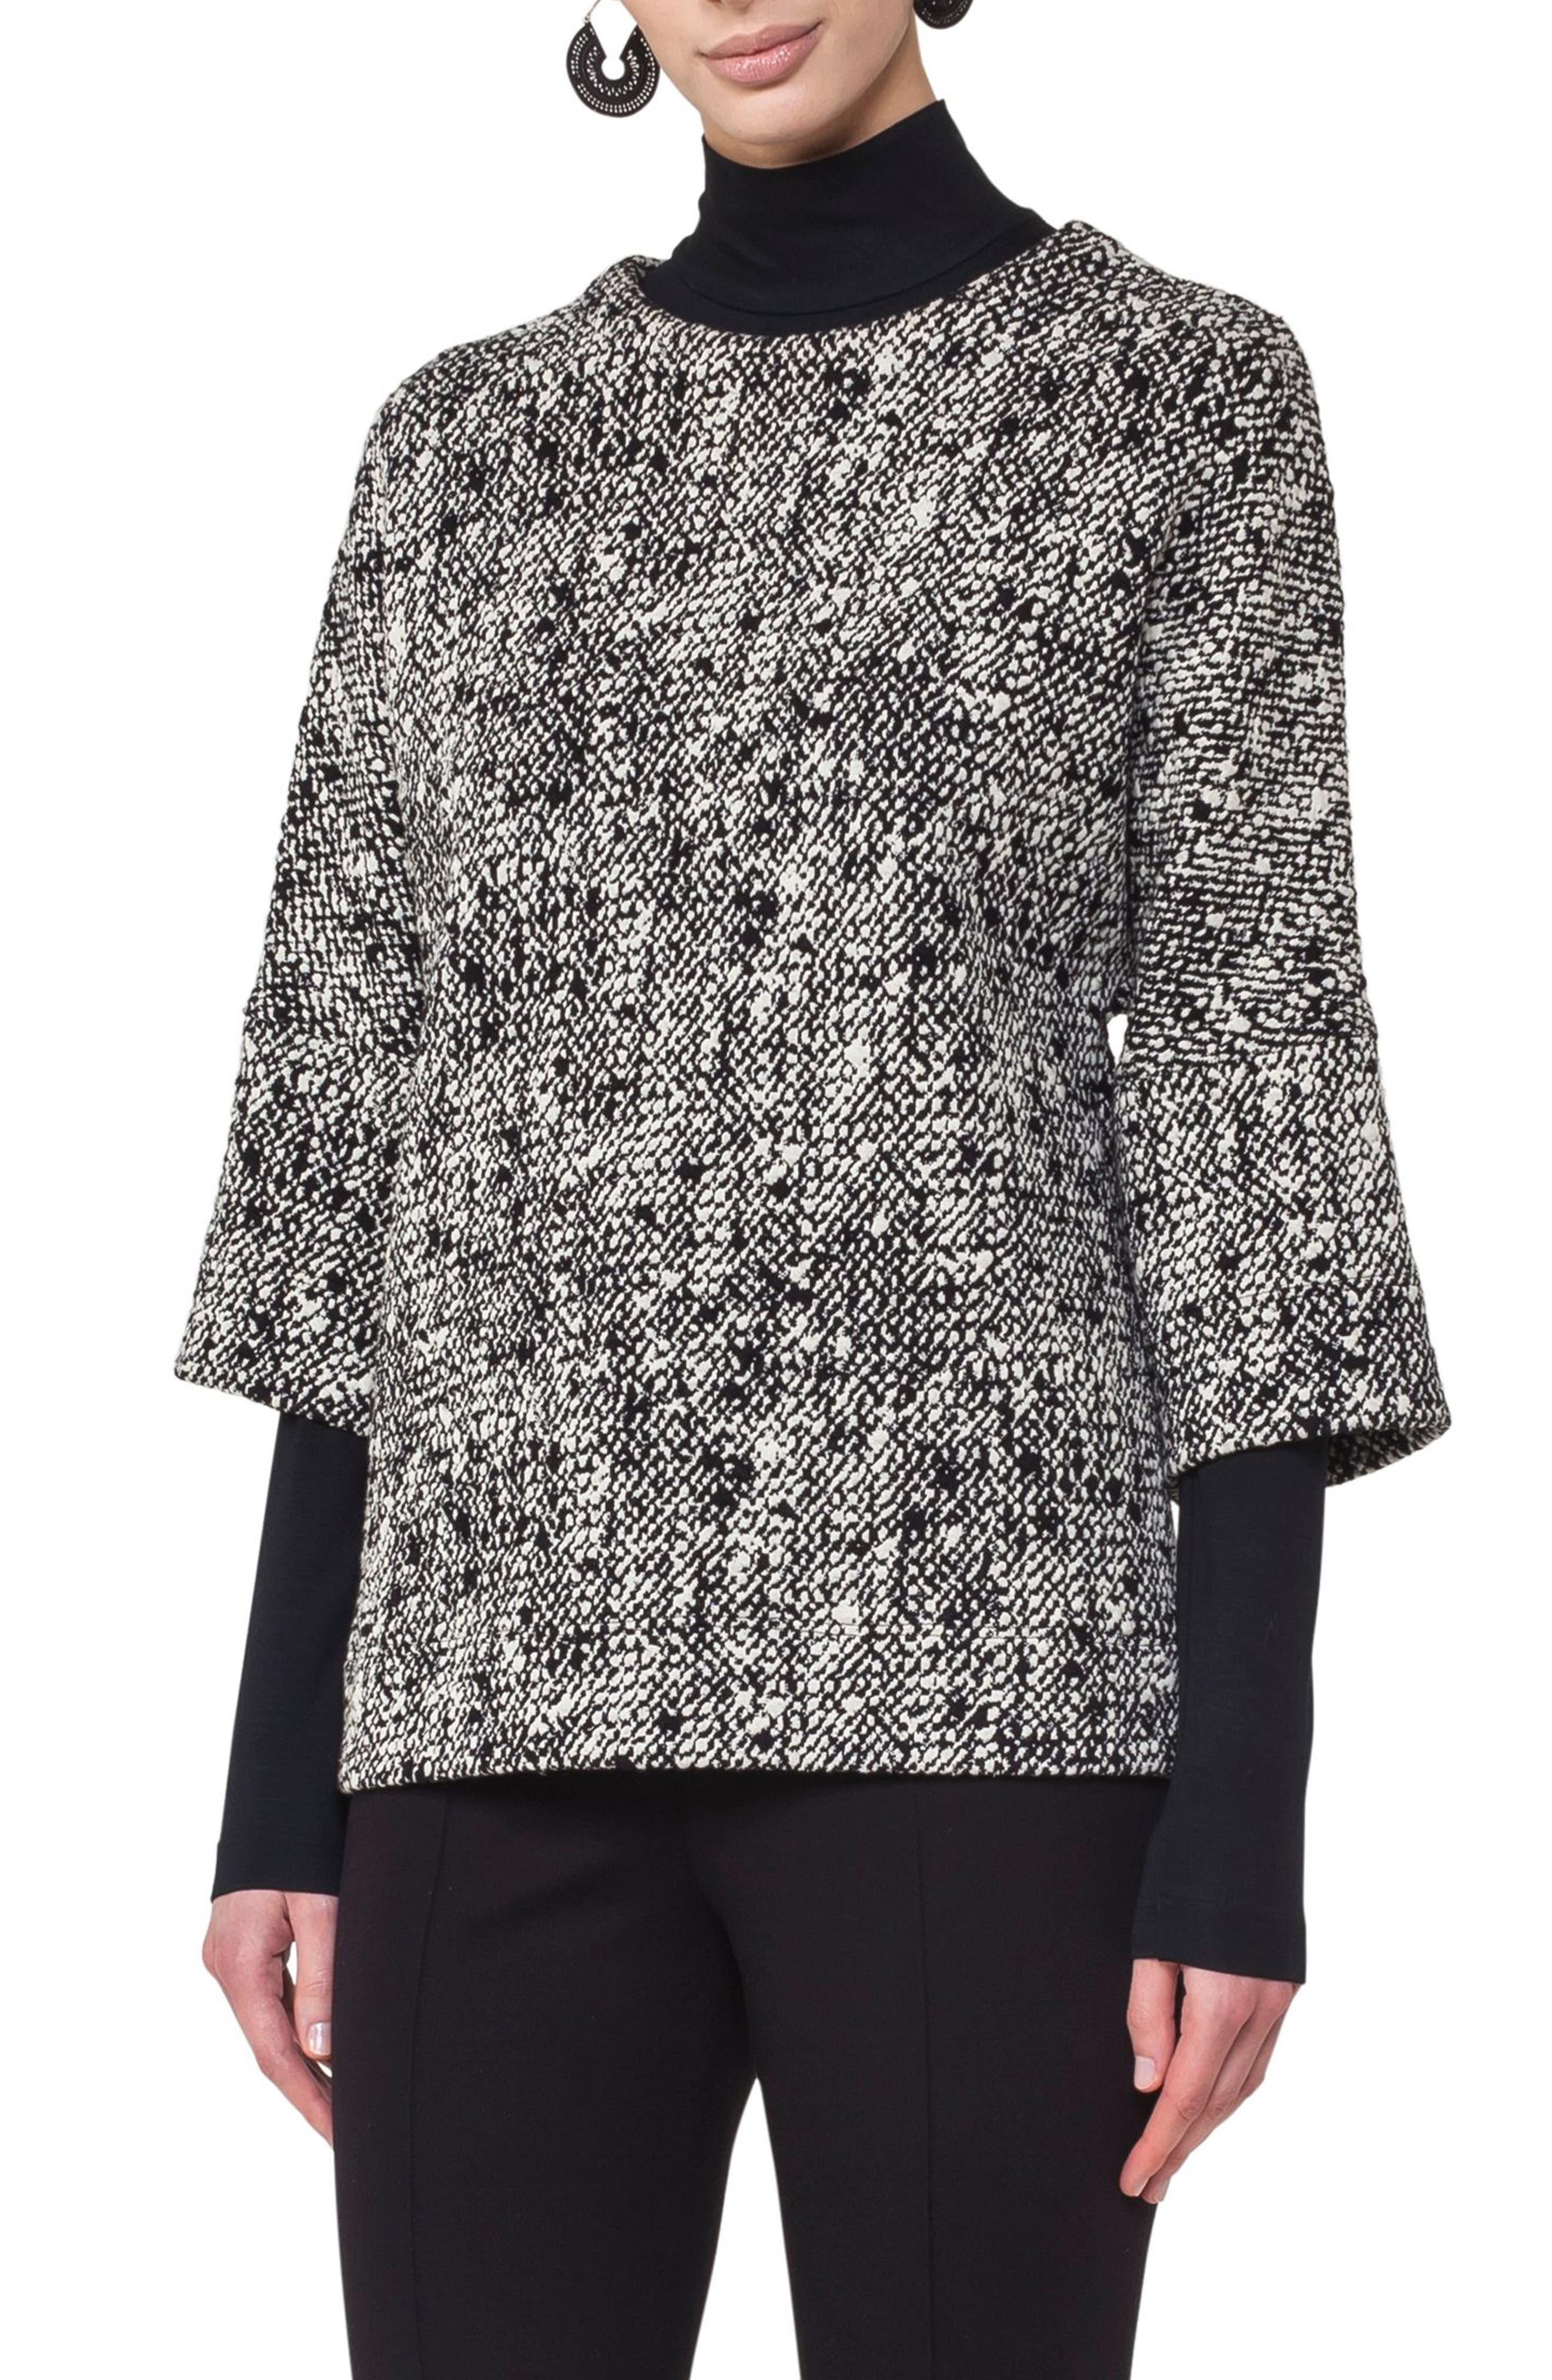 Cotton Blend Sweater,                             Main thumbnail 1, color,                             Black-Cream